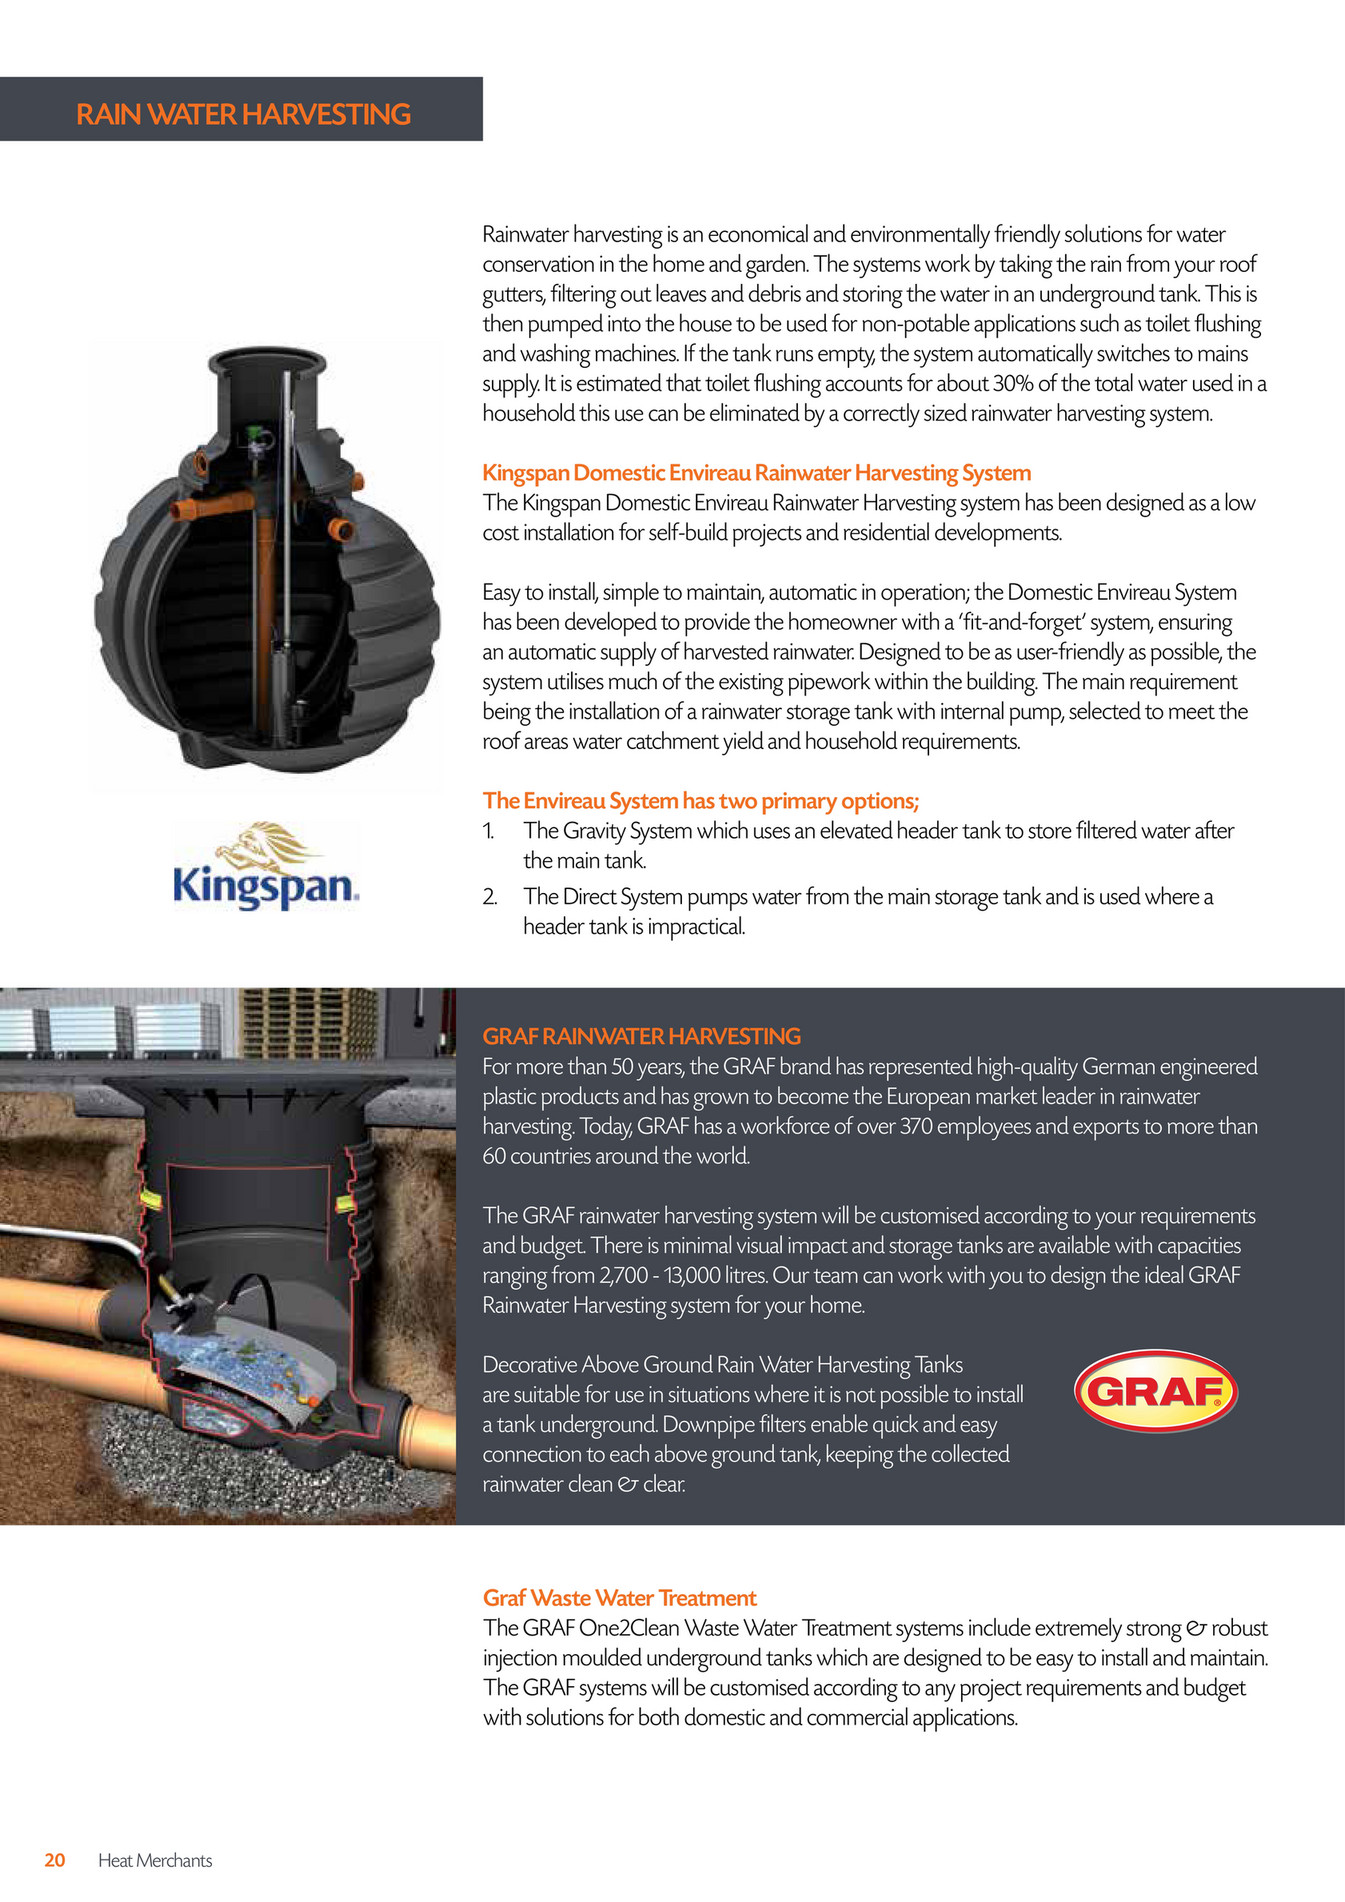 Home Water Treatment Systems Cost Heat Merchants Self Build Brochure Page 20 21 Created With